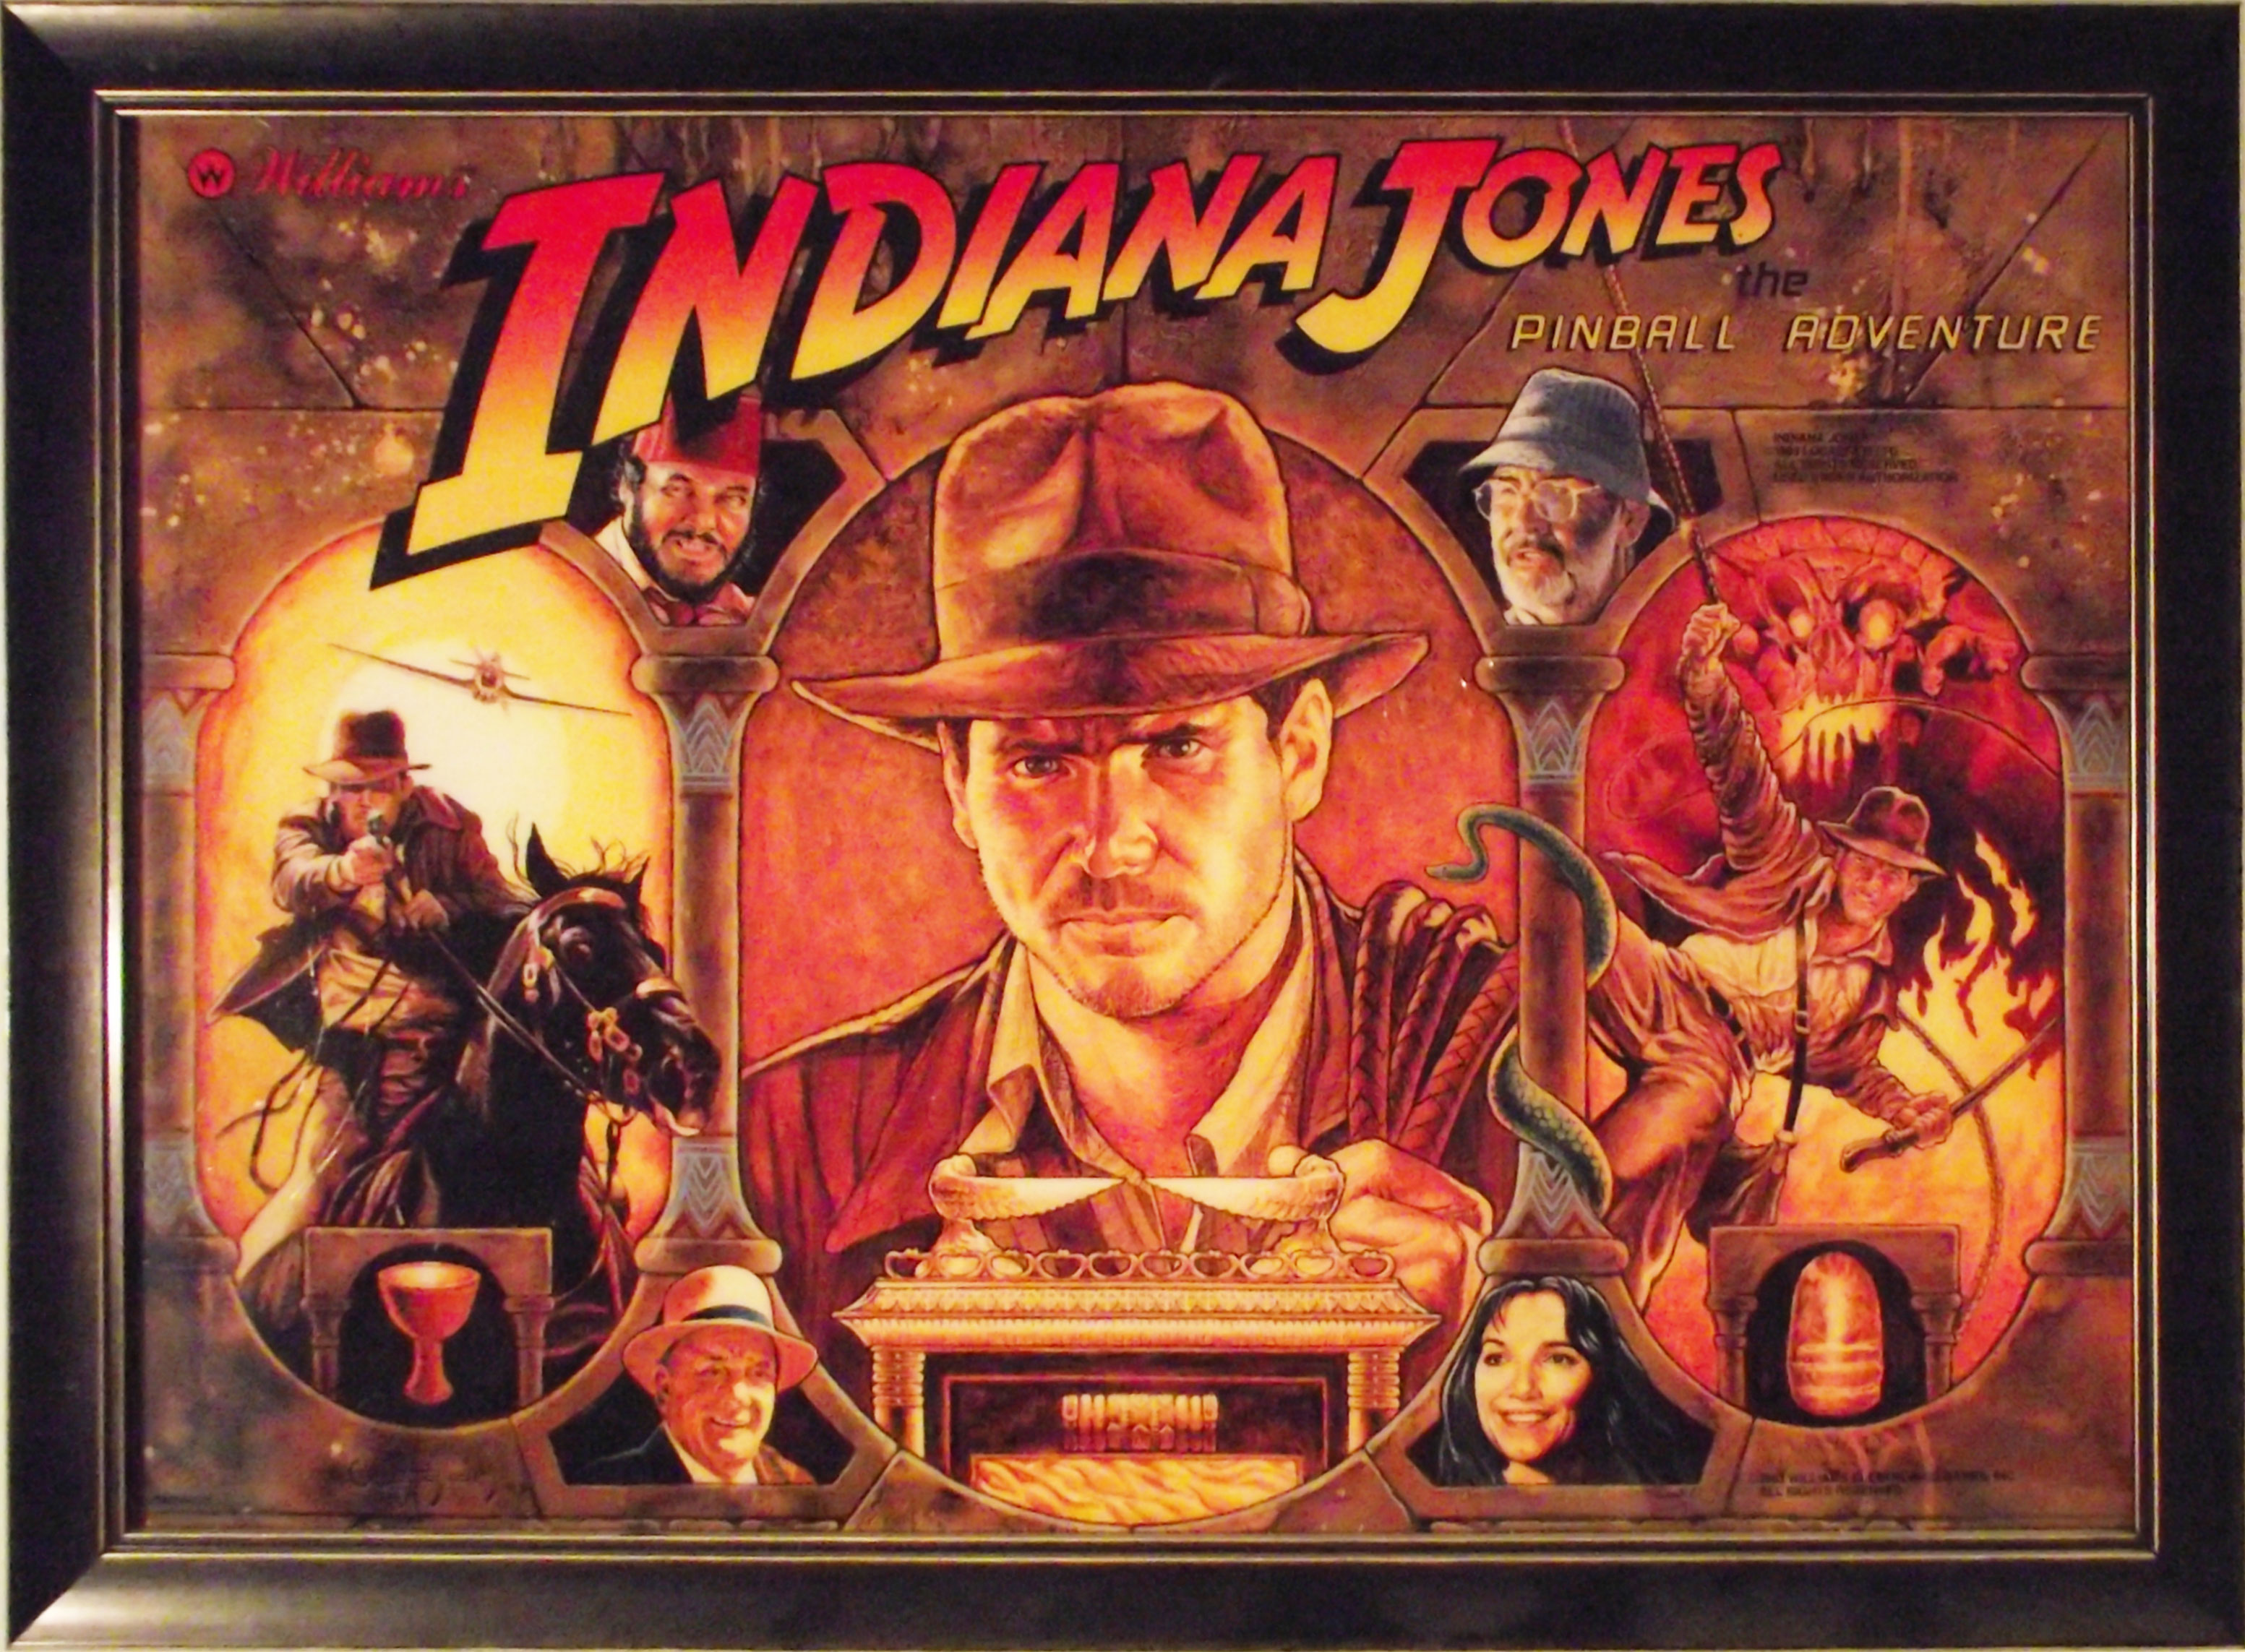 Indiana Jones pinball backglass art